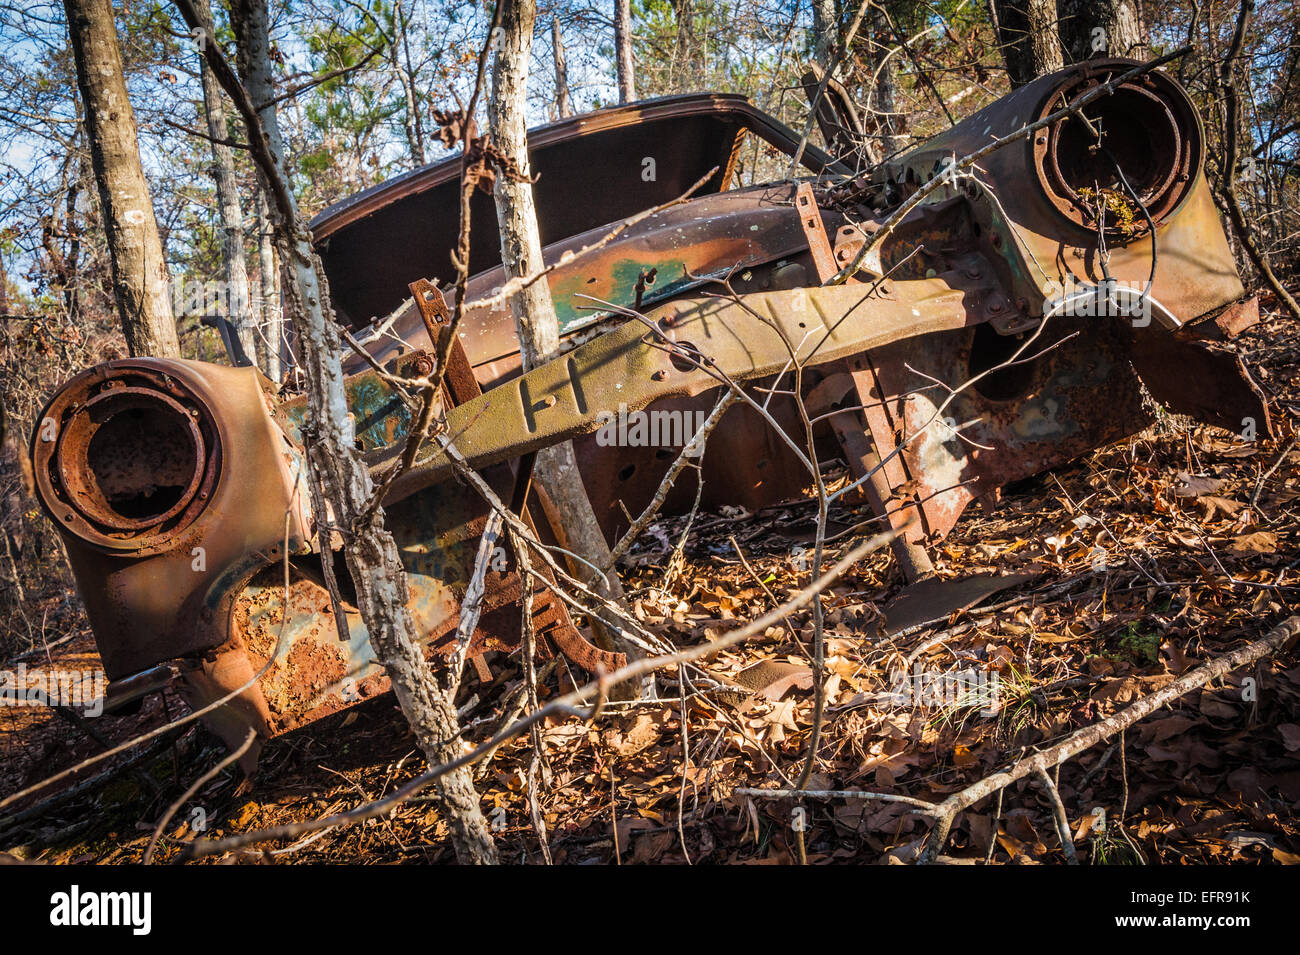 Abandoned icon of a former age succumbs to the elements of nature. - Stock Image